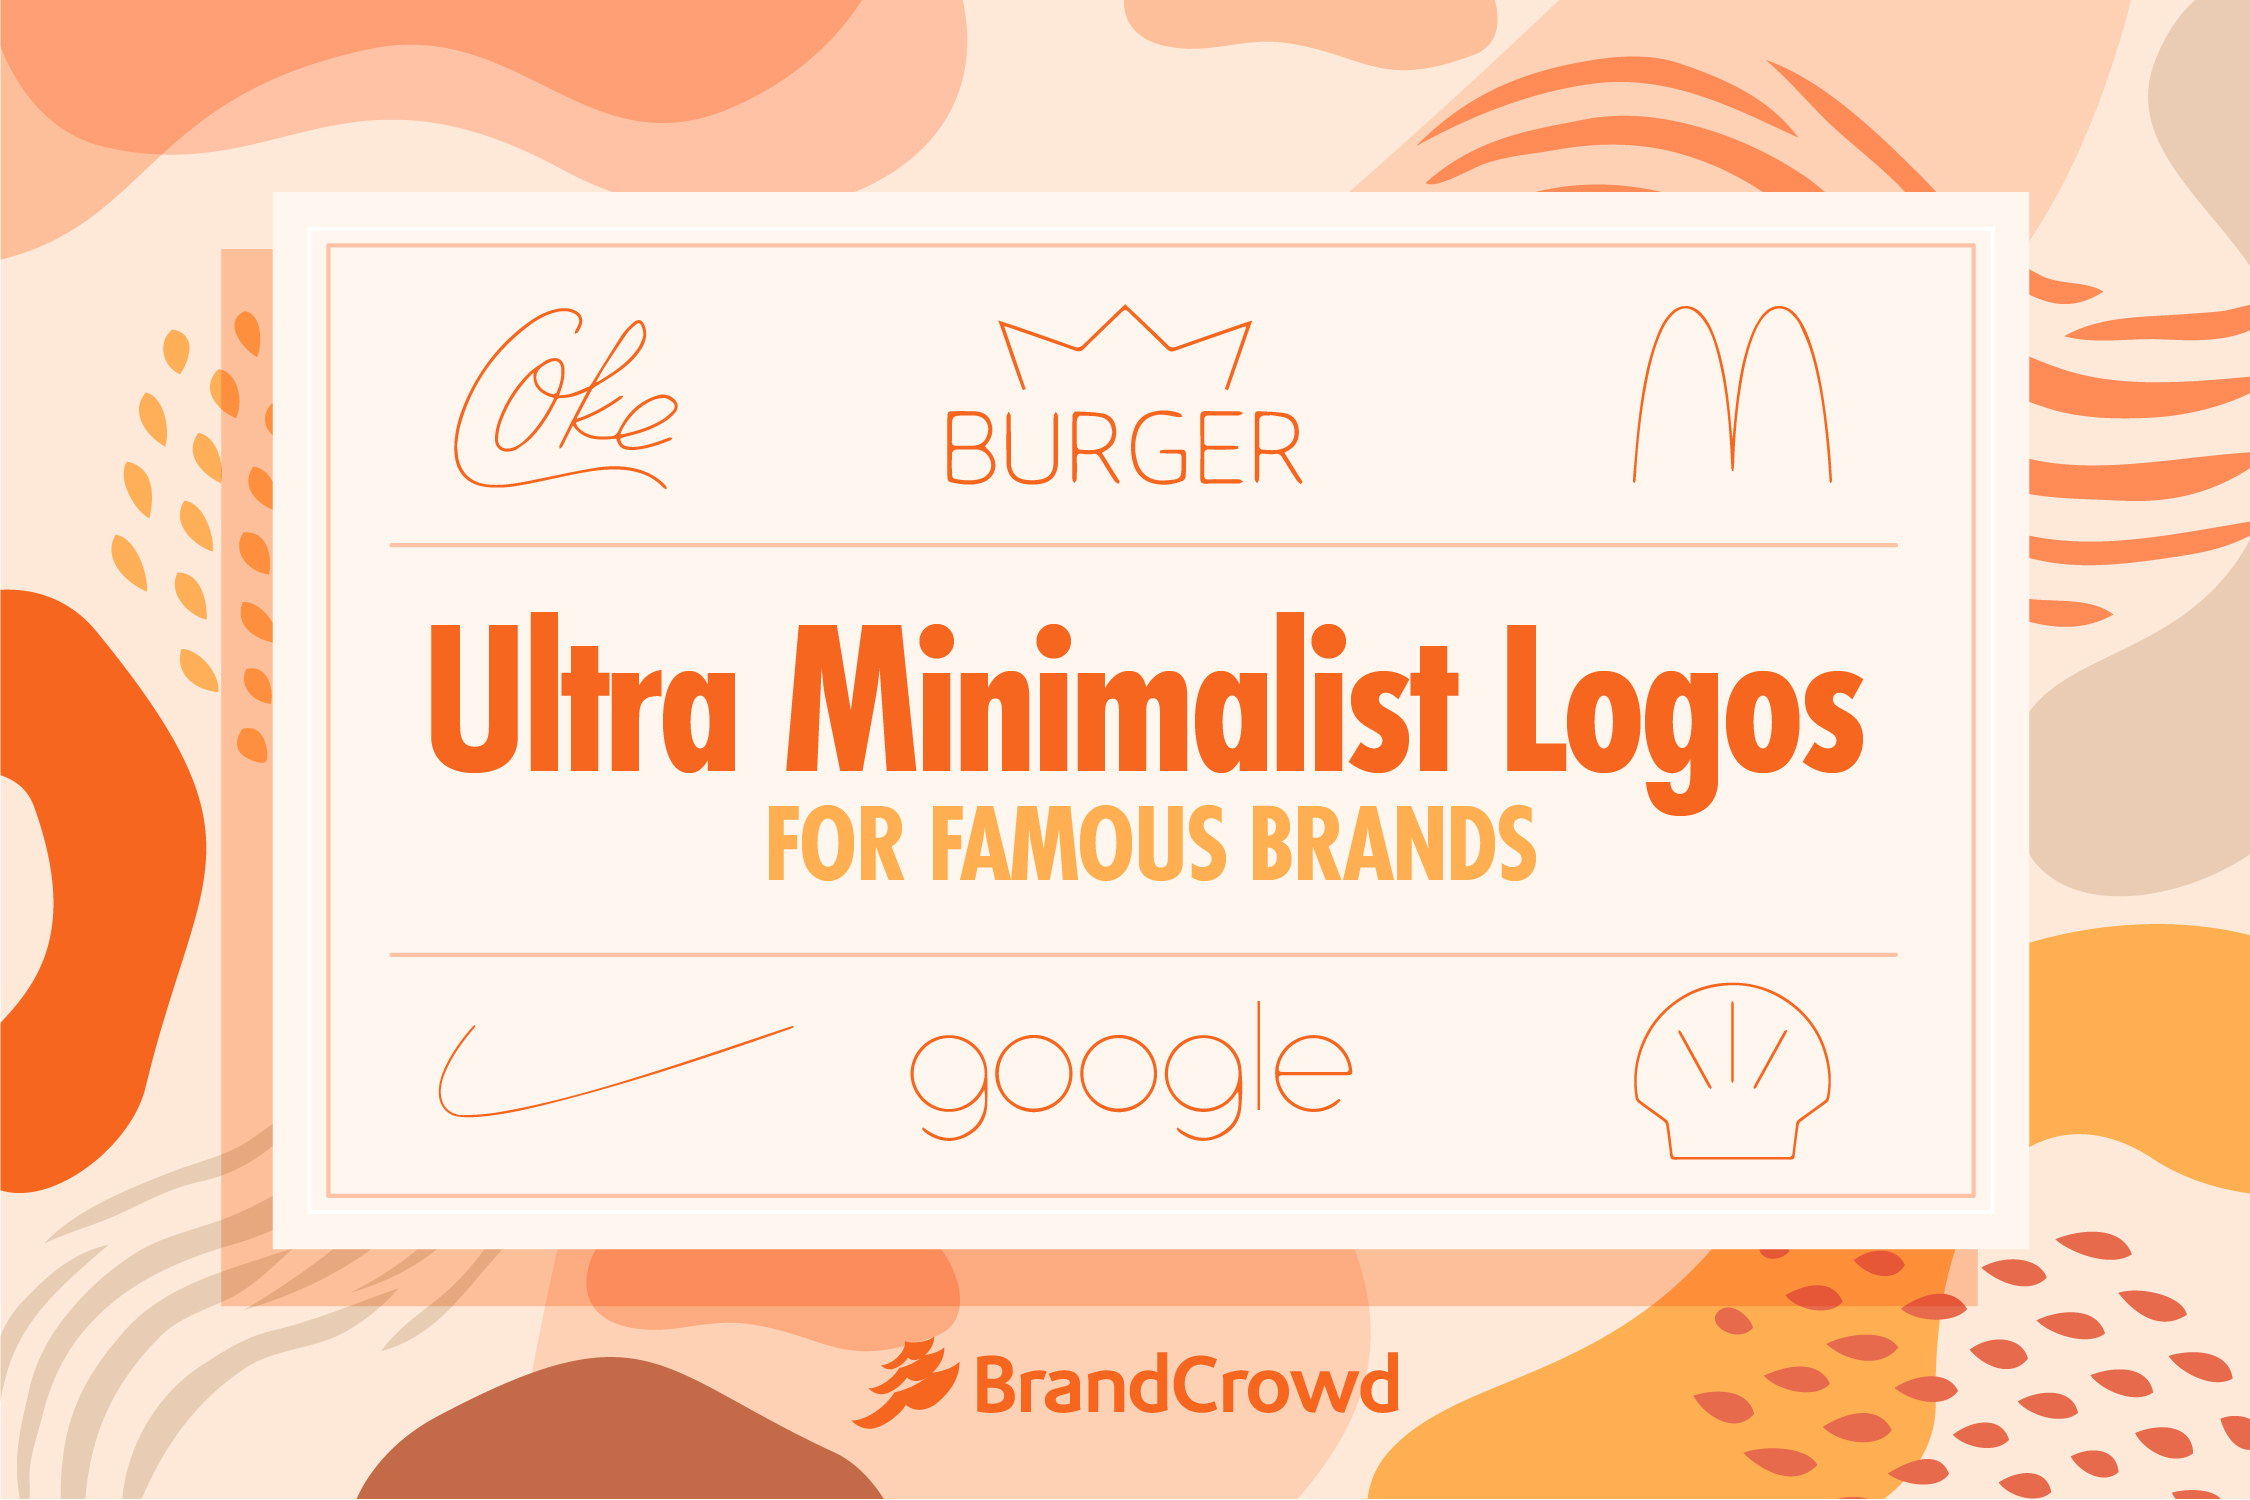 the-header-is-predominantly-colored-orange-featuring-some-of-theminimalist-redesigns-of-famous-logos-that-are-present-on-the-list